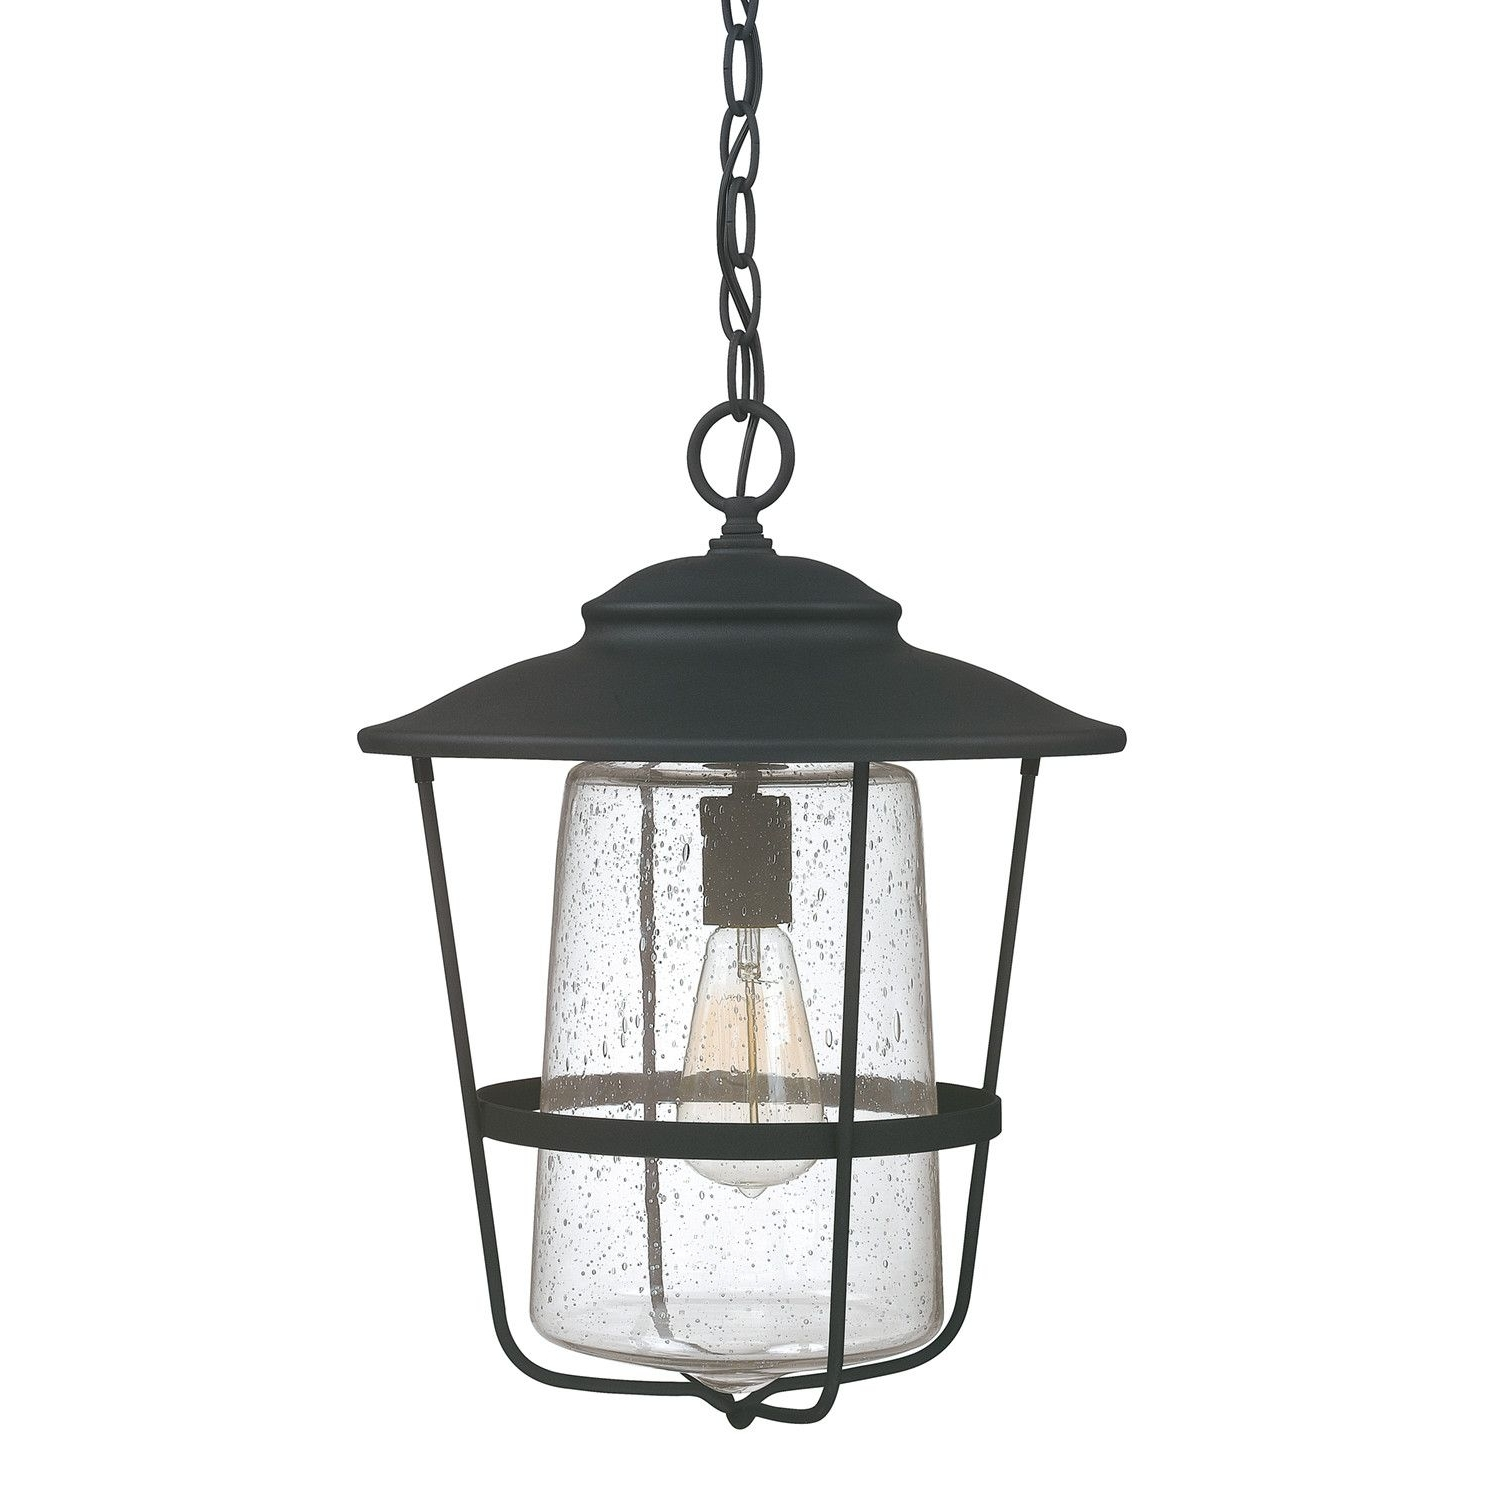 Furniture : Creekside Light Outdoor Hanging Lantern Products Solar Regarding Preferred Hanging Outdoor Onion Lights (View 8 of 20)